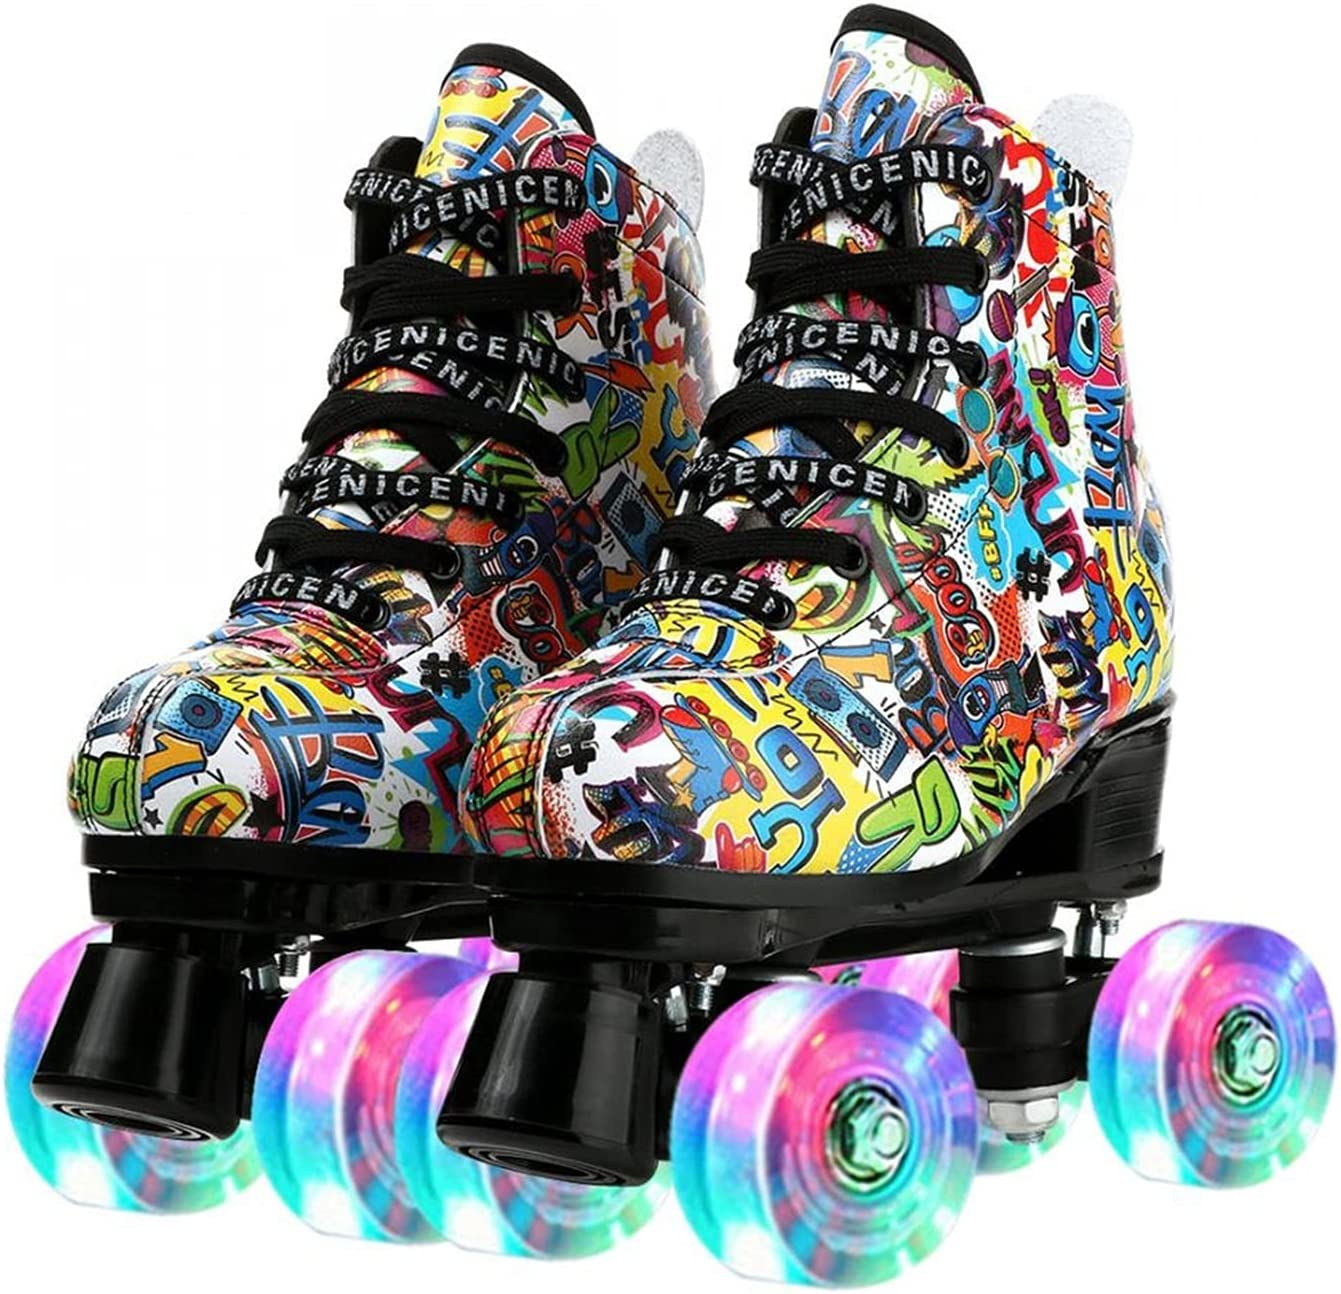 70% OFF Outlet Roller Skates Superior Outdoor Speed P Cozy Stylish Leopard